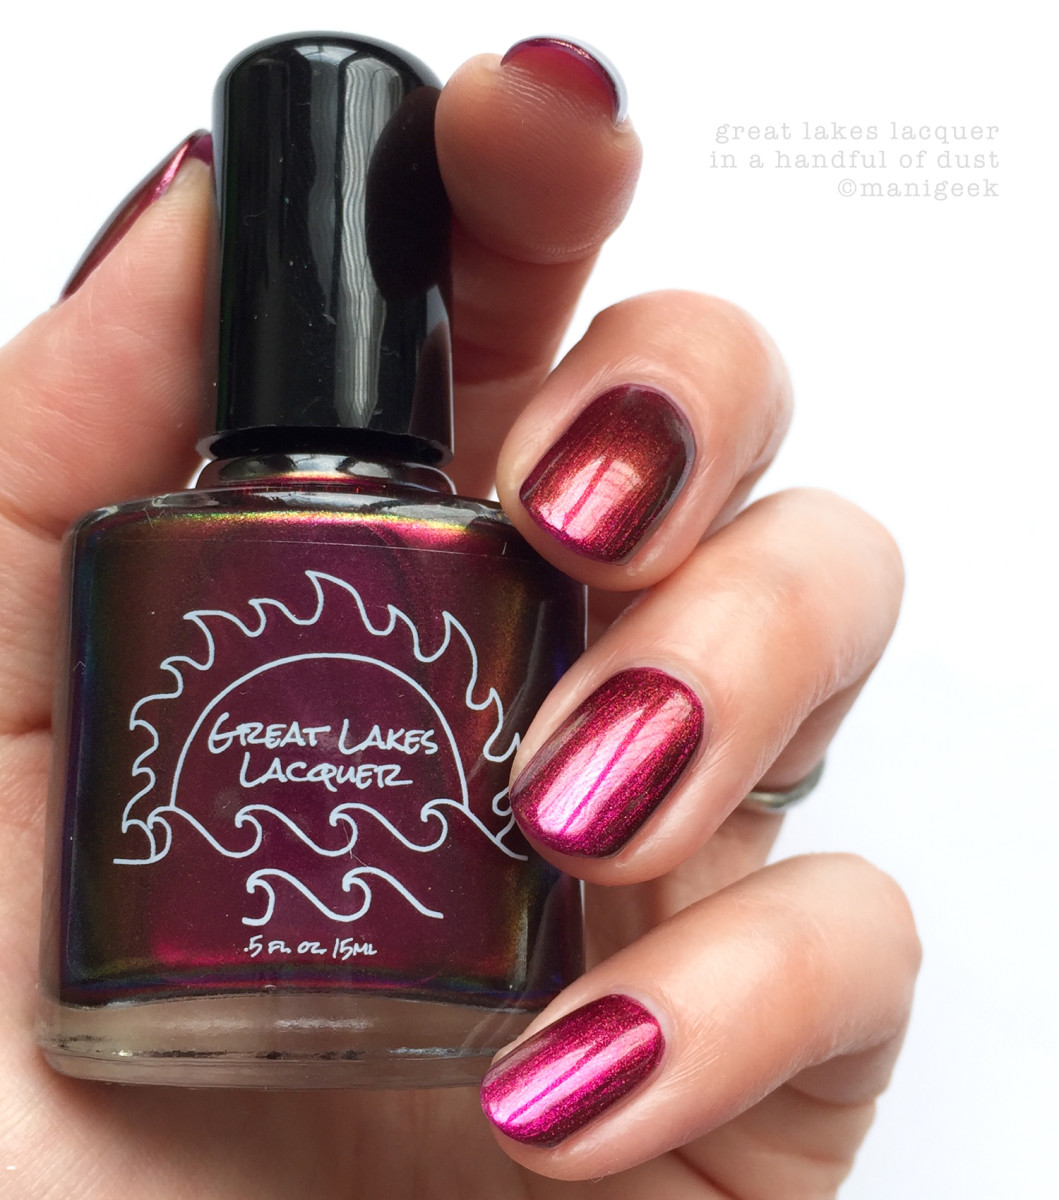 Great Lakes Lacquer Swatches_In a Handful of Dust H1